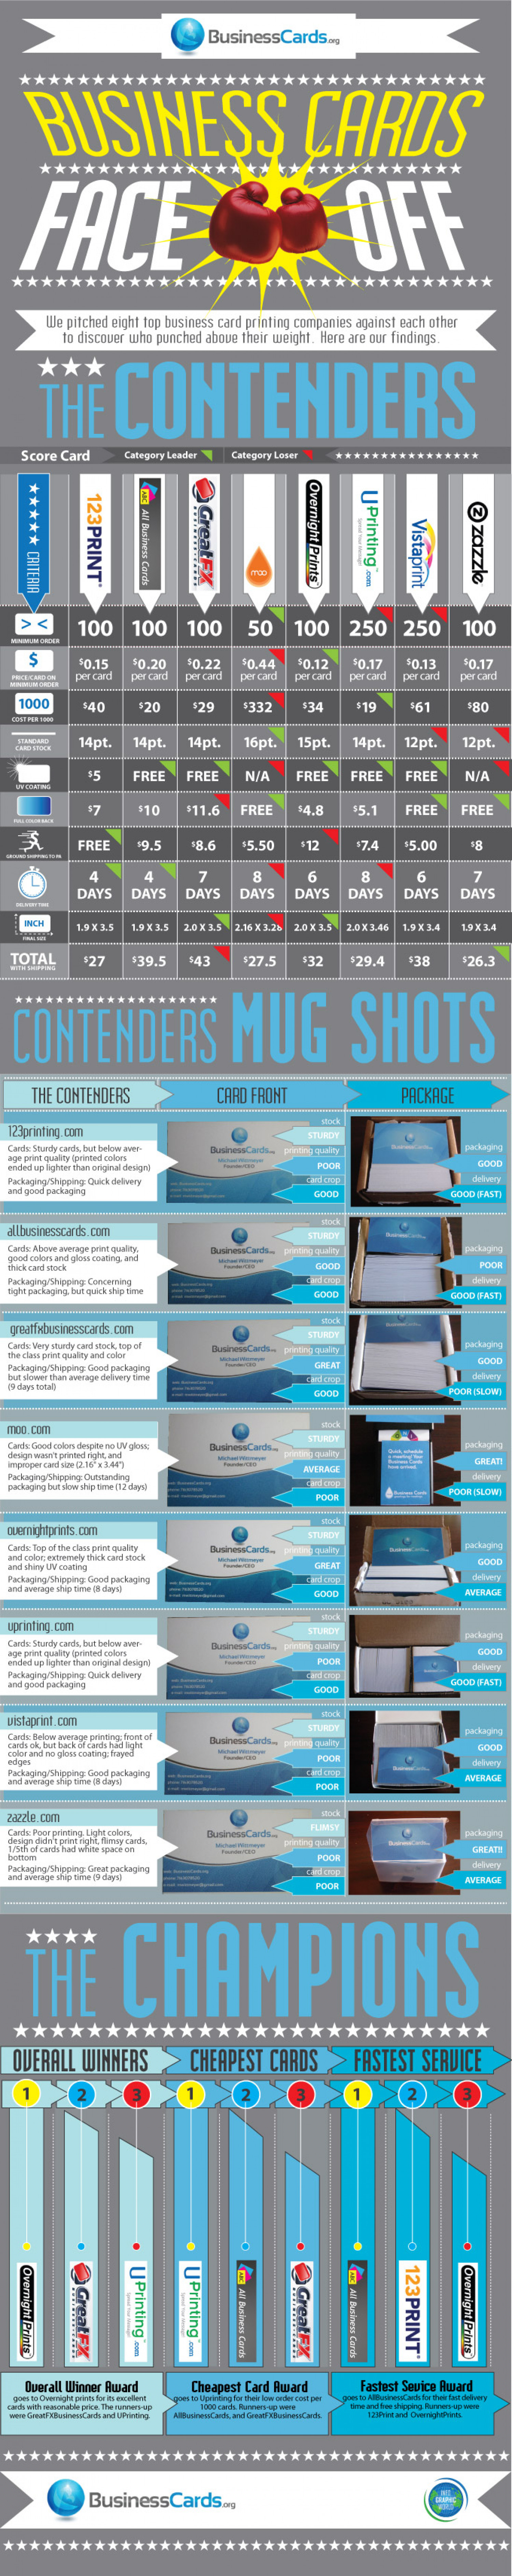 Business Card Face-off Infographic